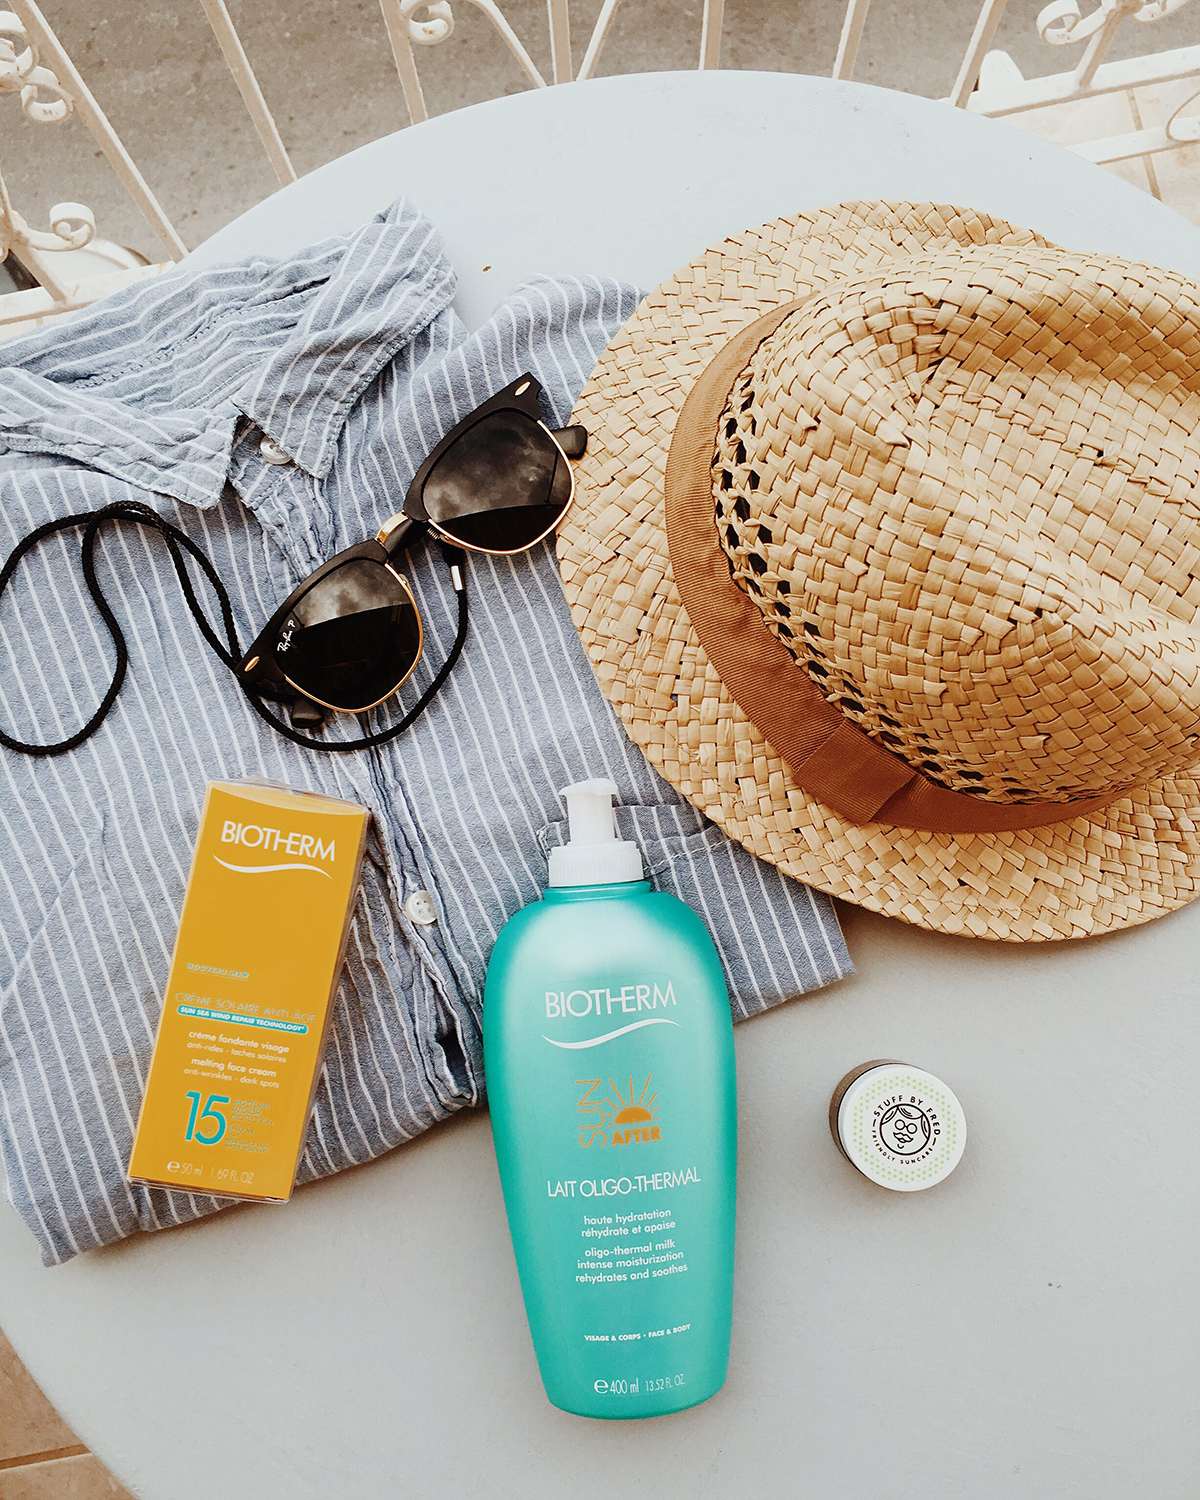 sun lotion and aftersun from biotherm and stuff by fred